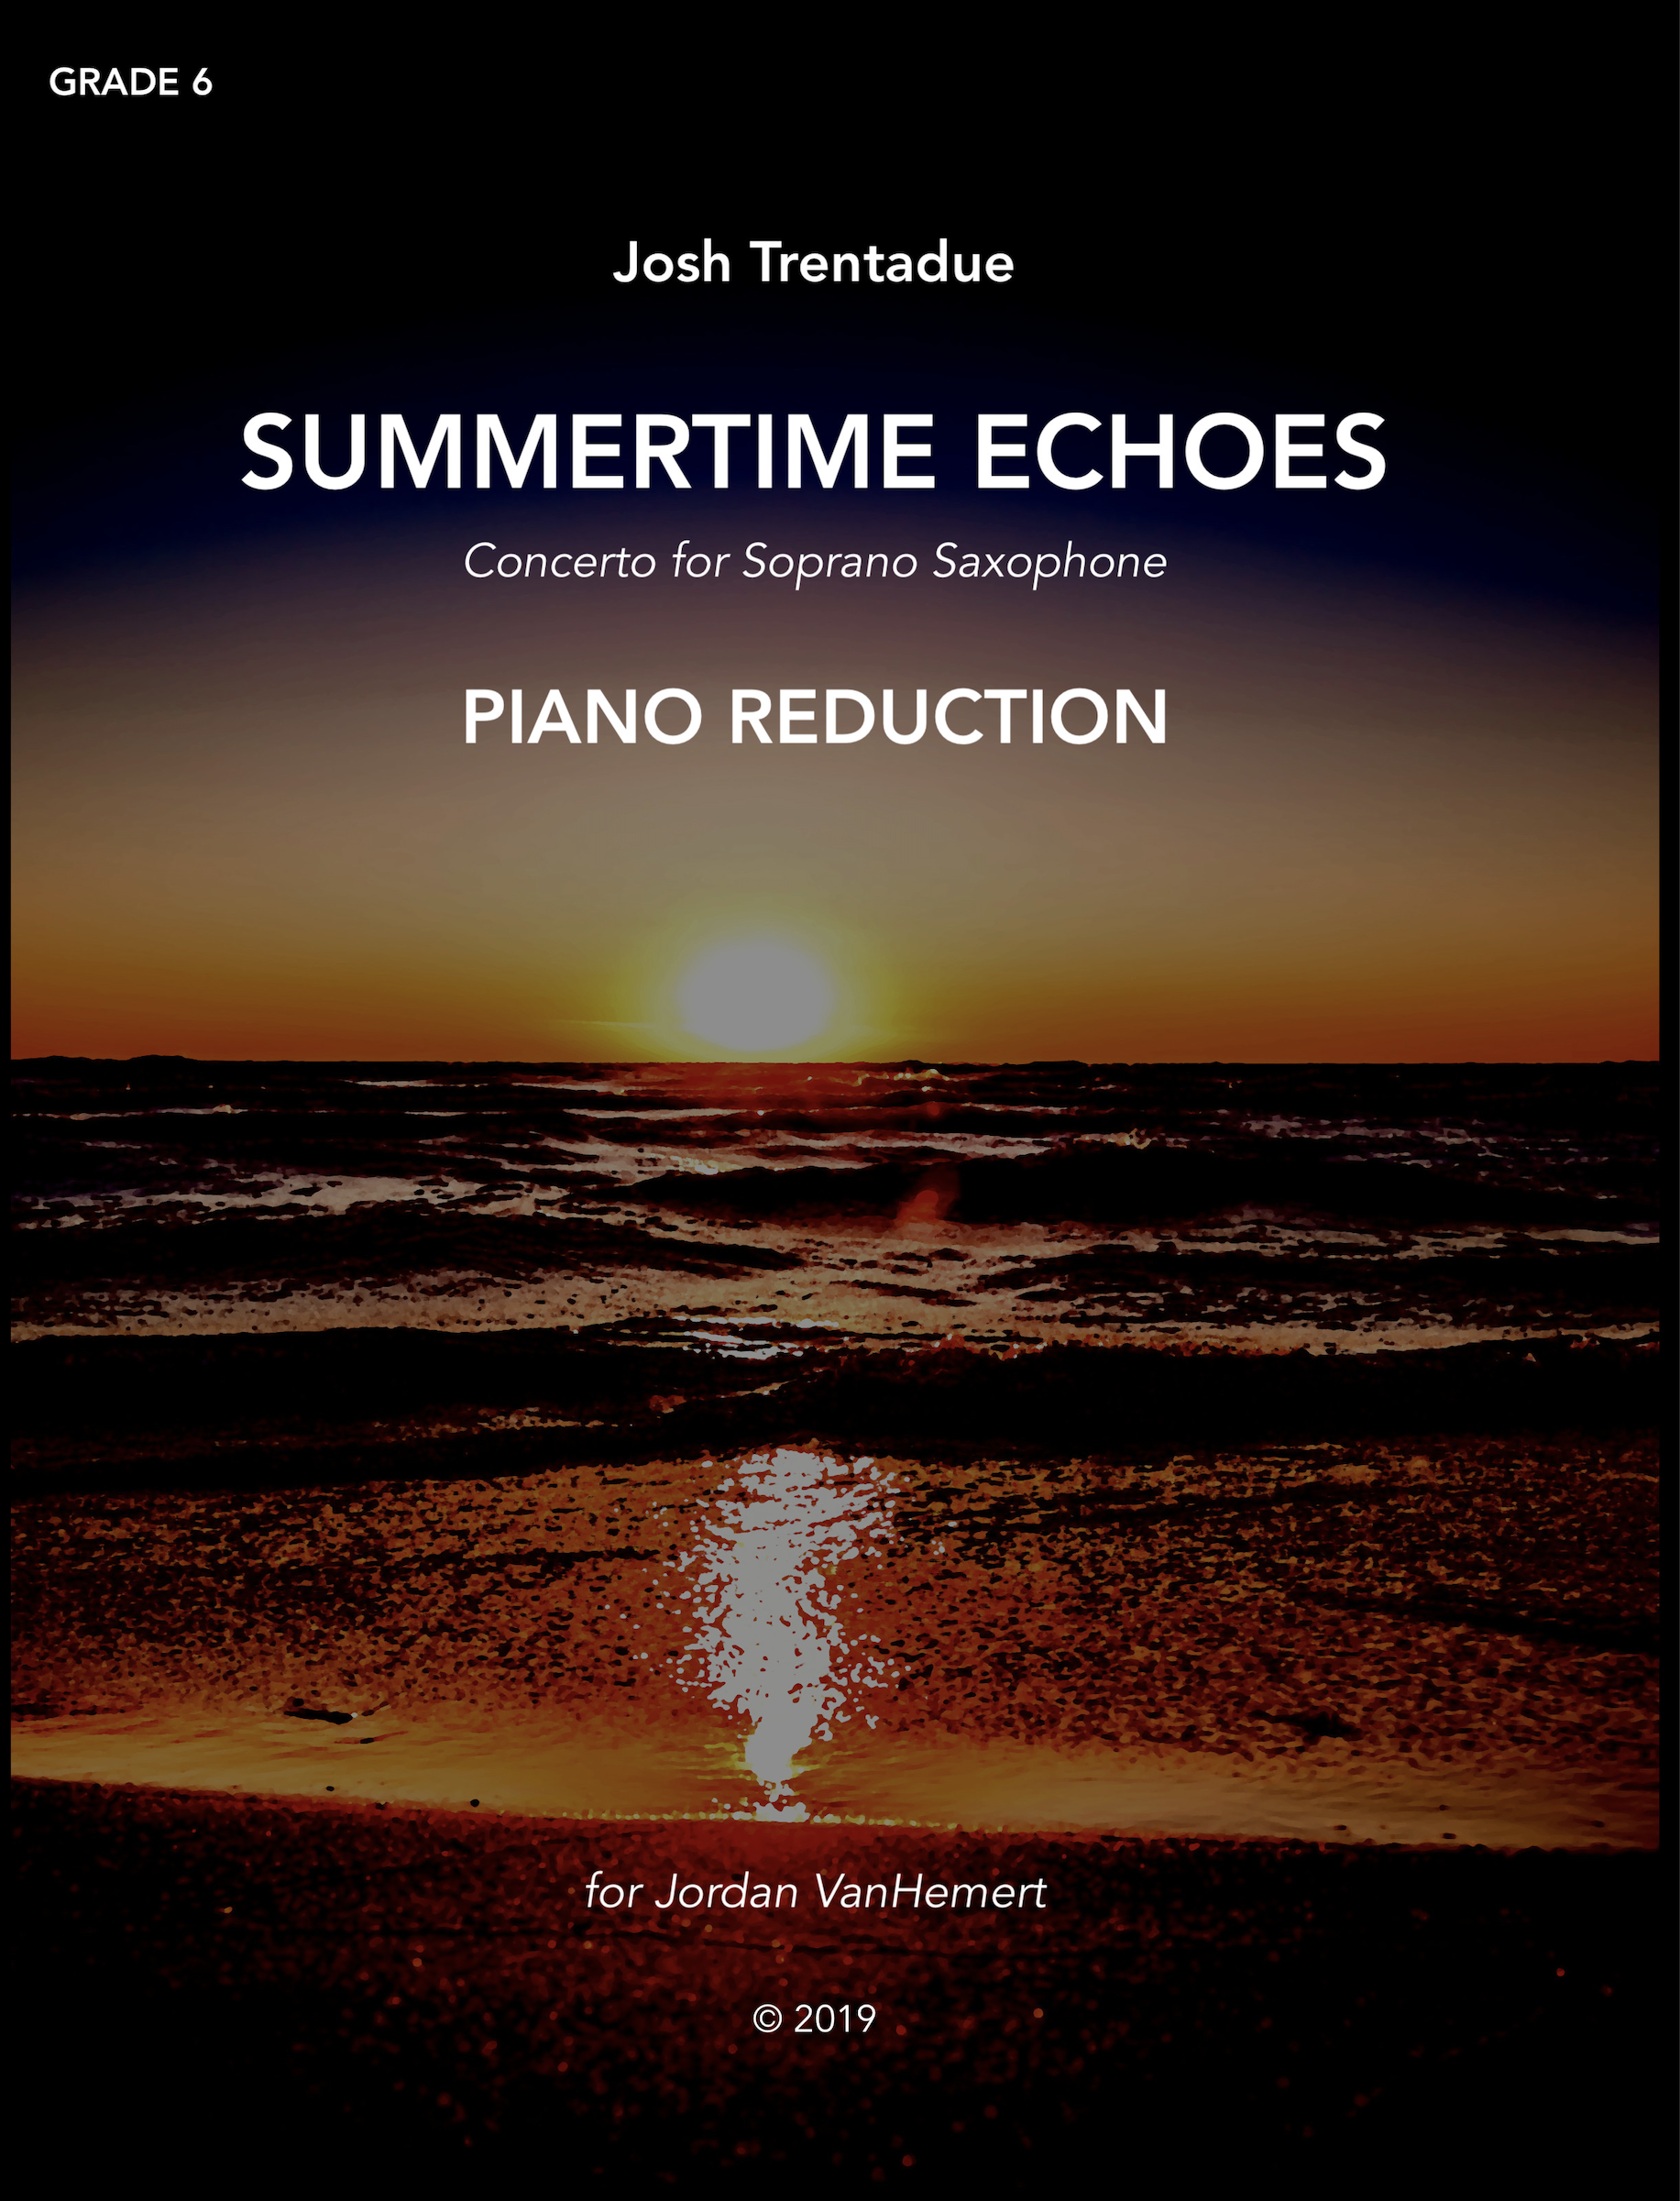 Summertime Echoes (Piano Reduction) by Josh Trentadue